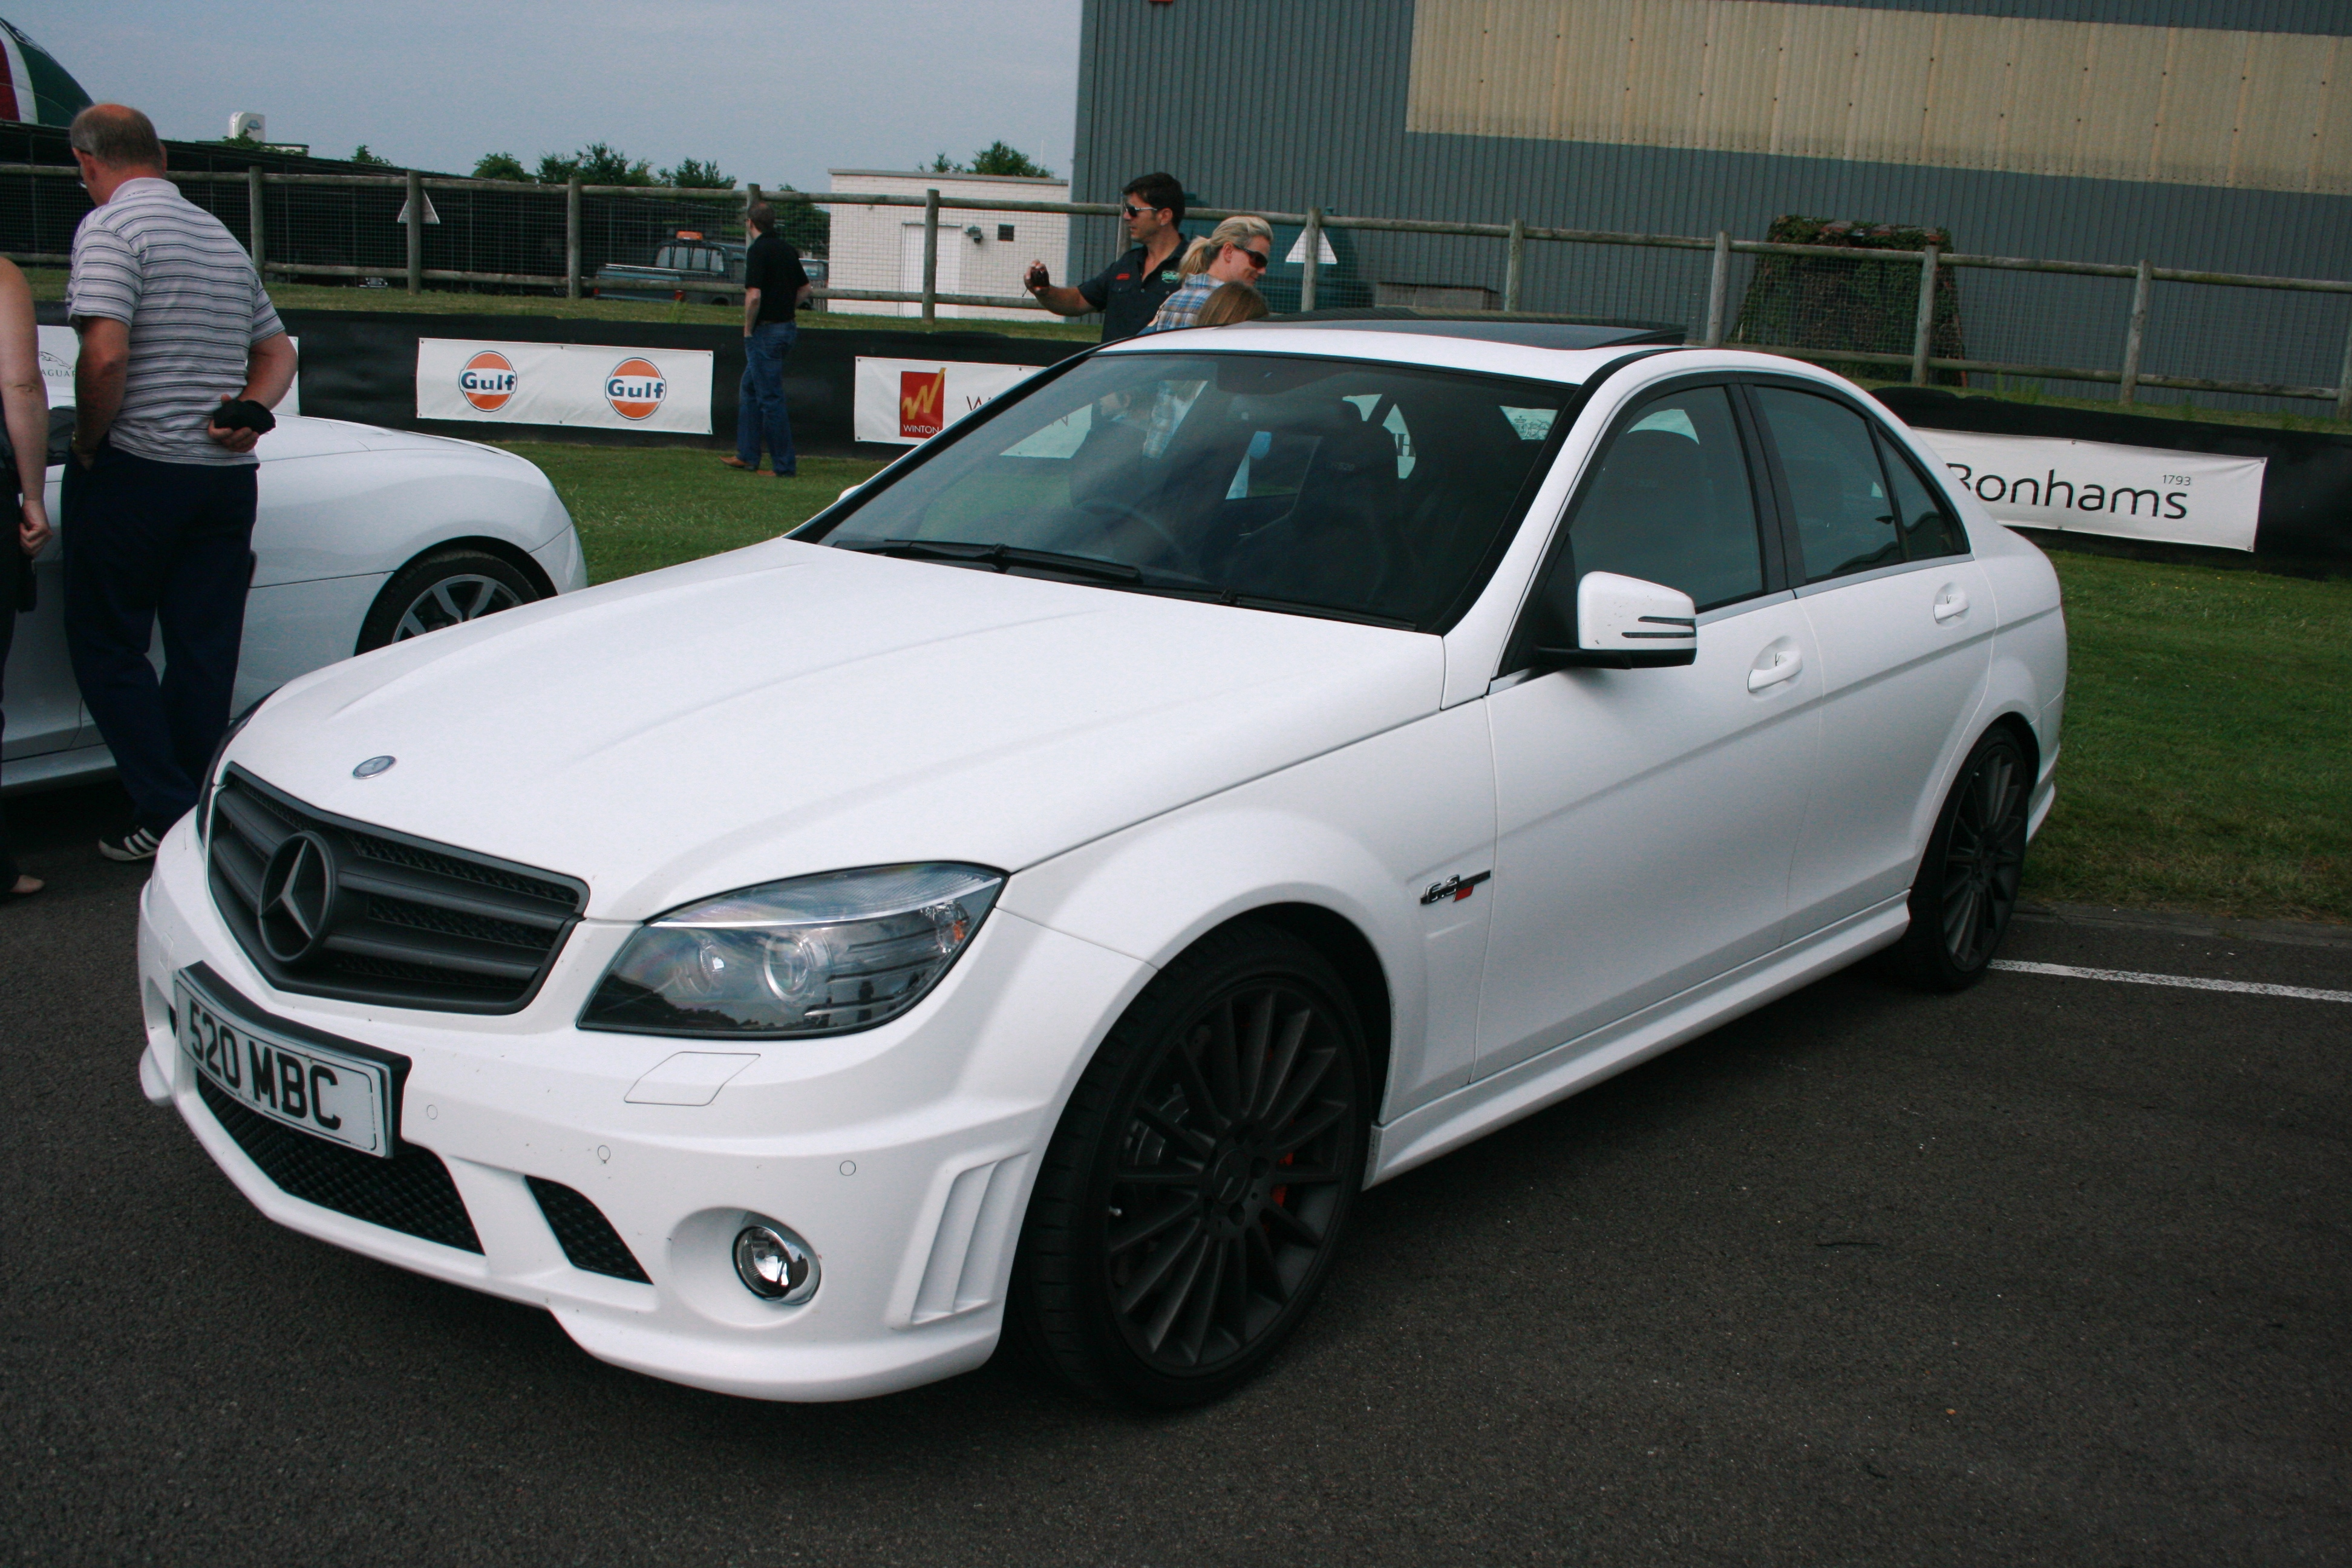 Mercedes Benz C63 Amg Wiki >> File:Mercedes C Class AMG - matte white - Flickr - Supermac1961.jpg - Wikimedia Commons